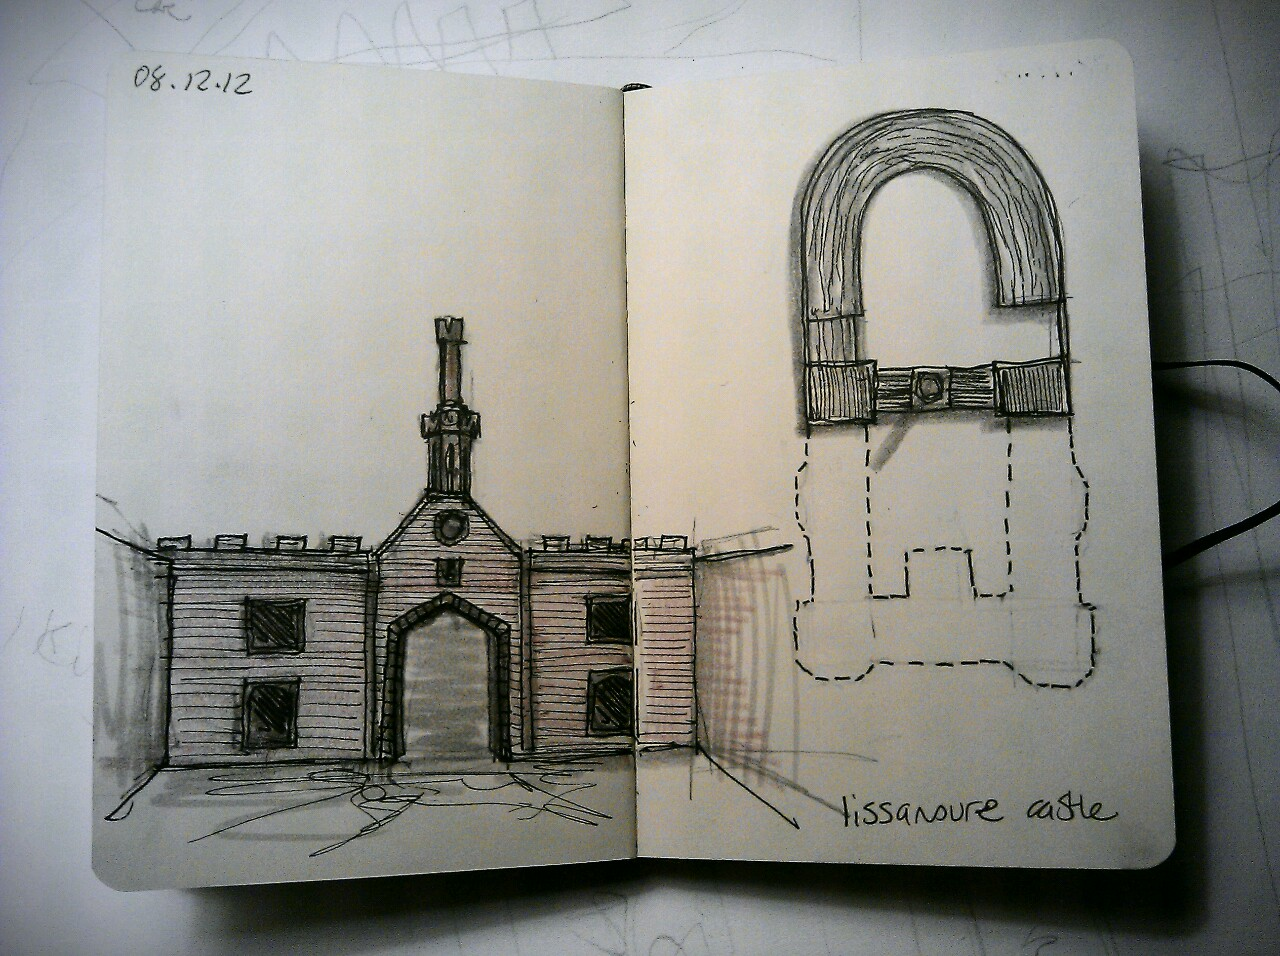 365 drawings later … day 312 … lissanoure castle